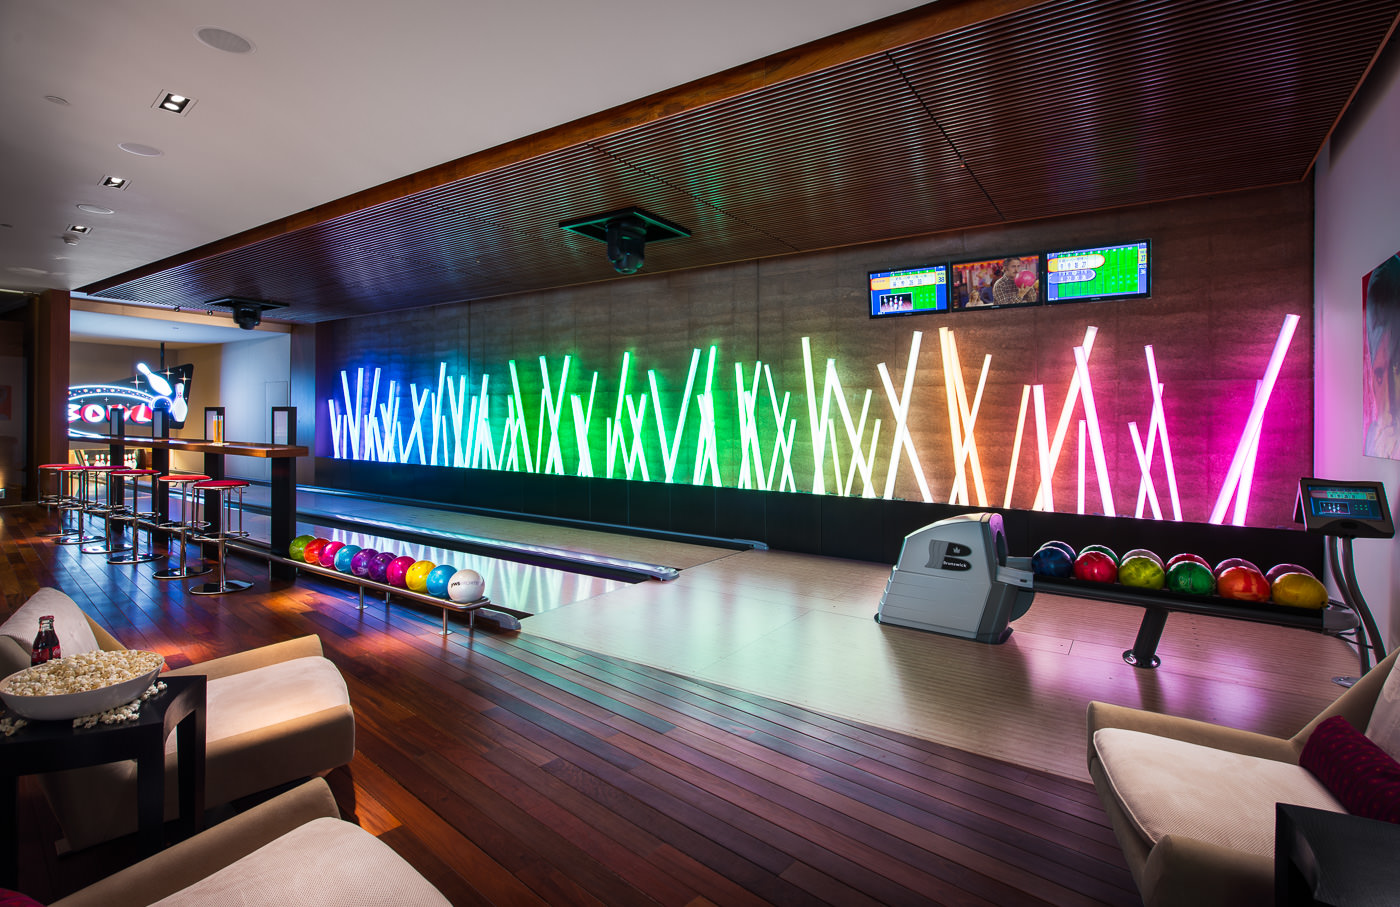 Private bowling alley Interior Design Ideas